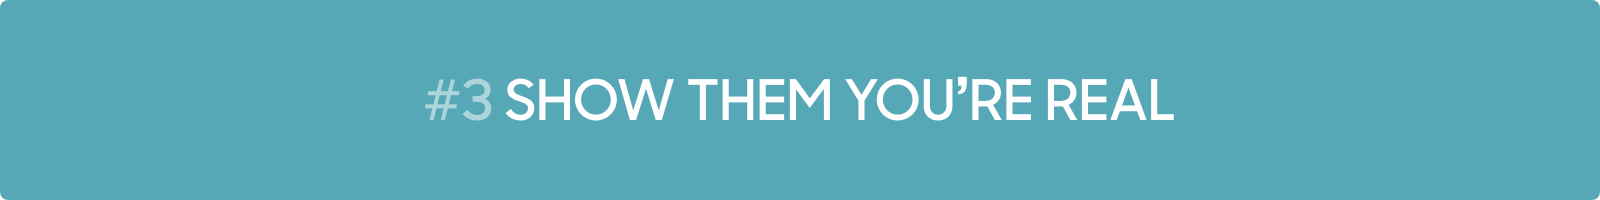 Conversational Marketing Tip #3: Show them you're real